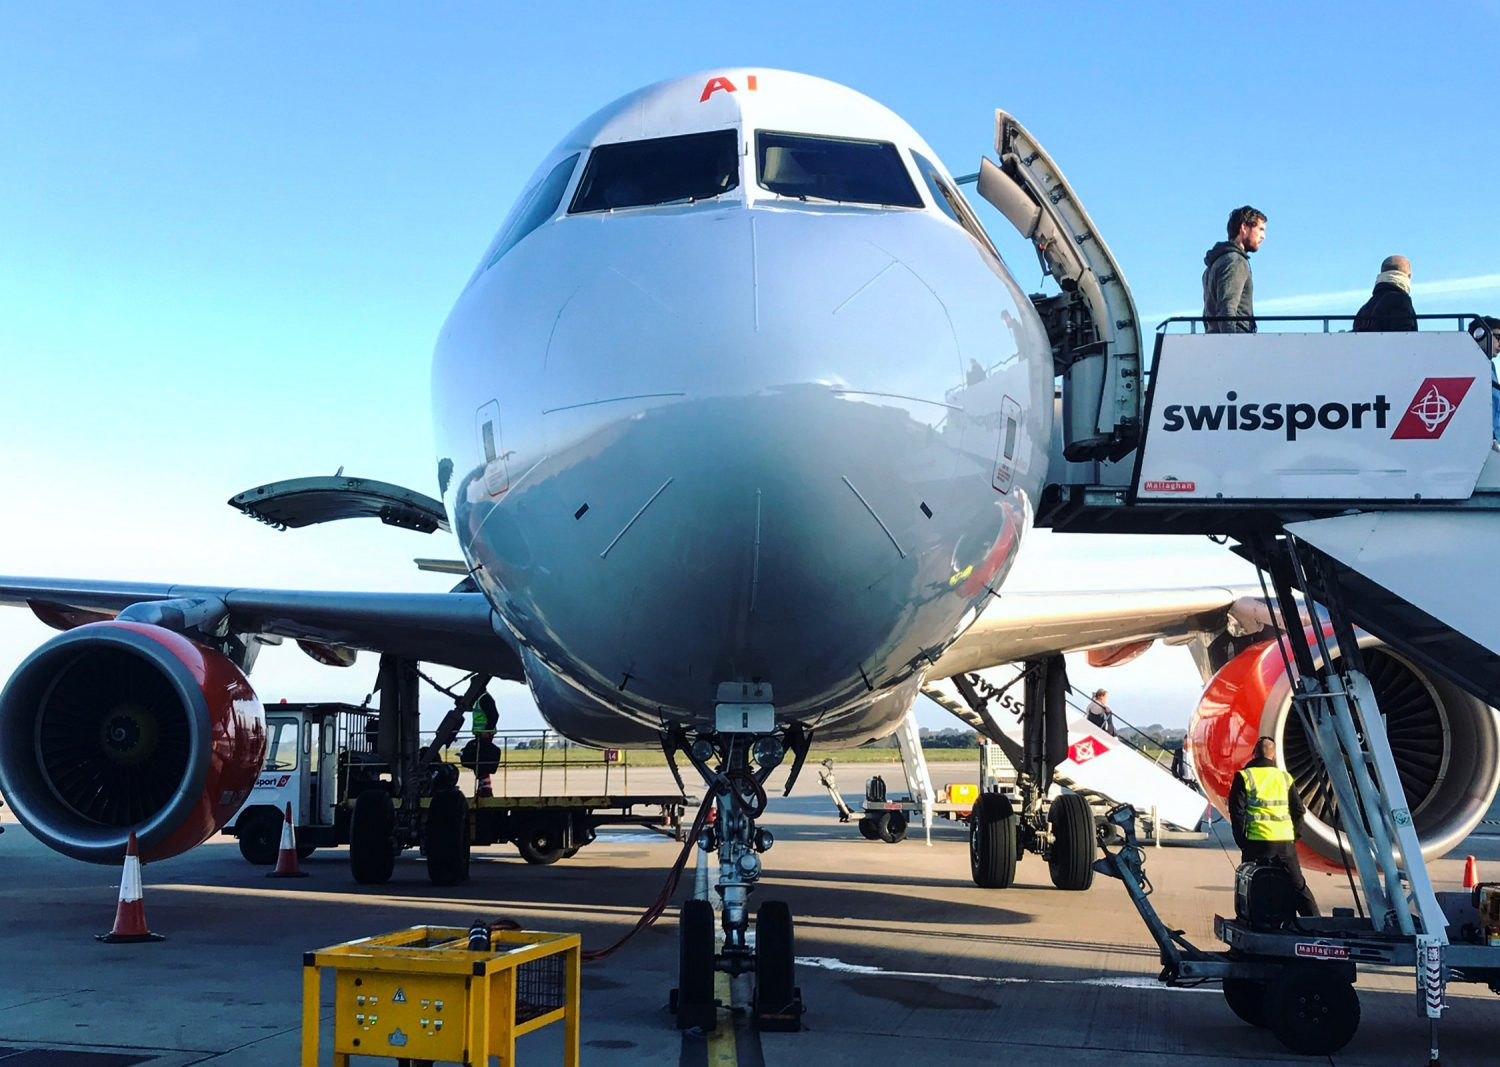 Airplane unloading at Swissport